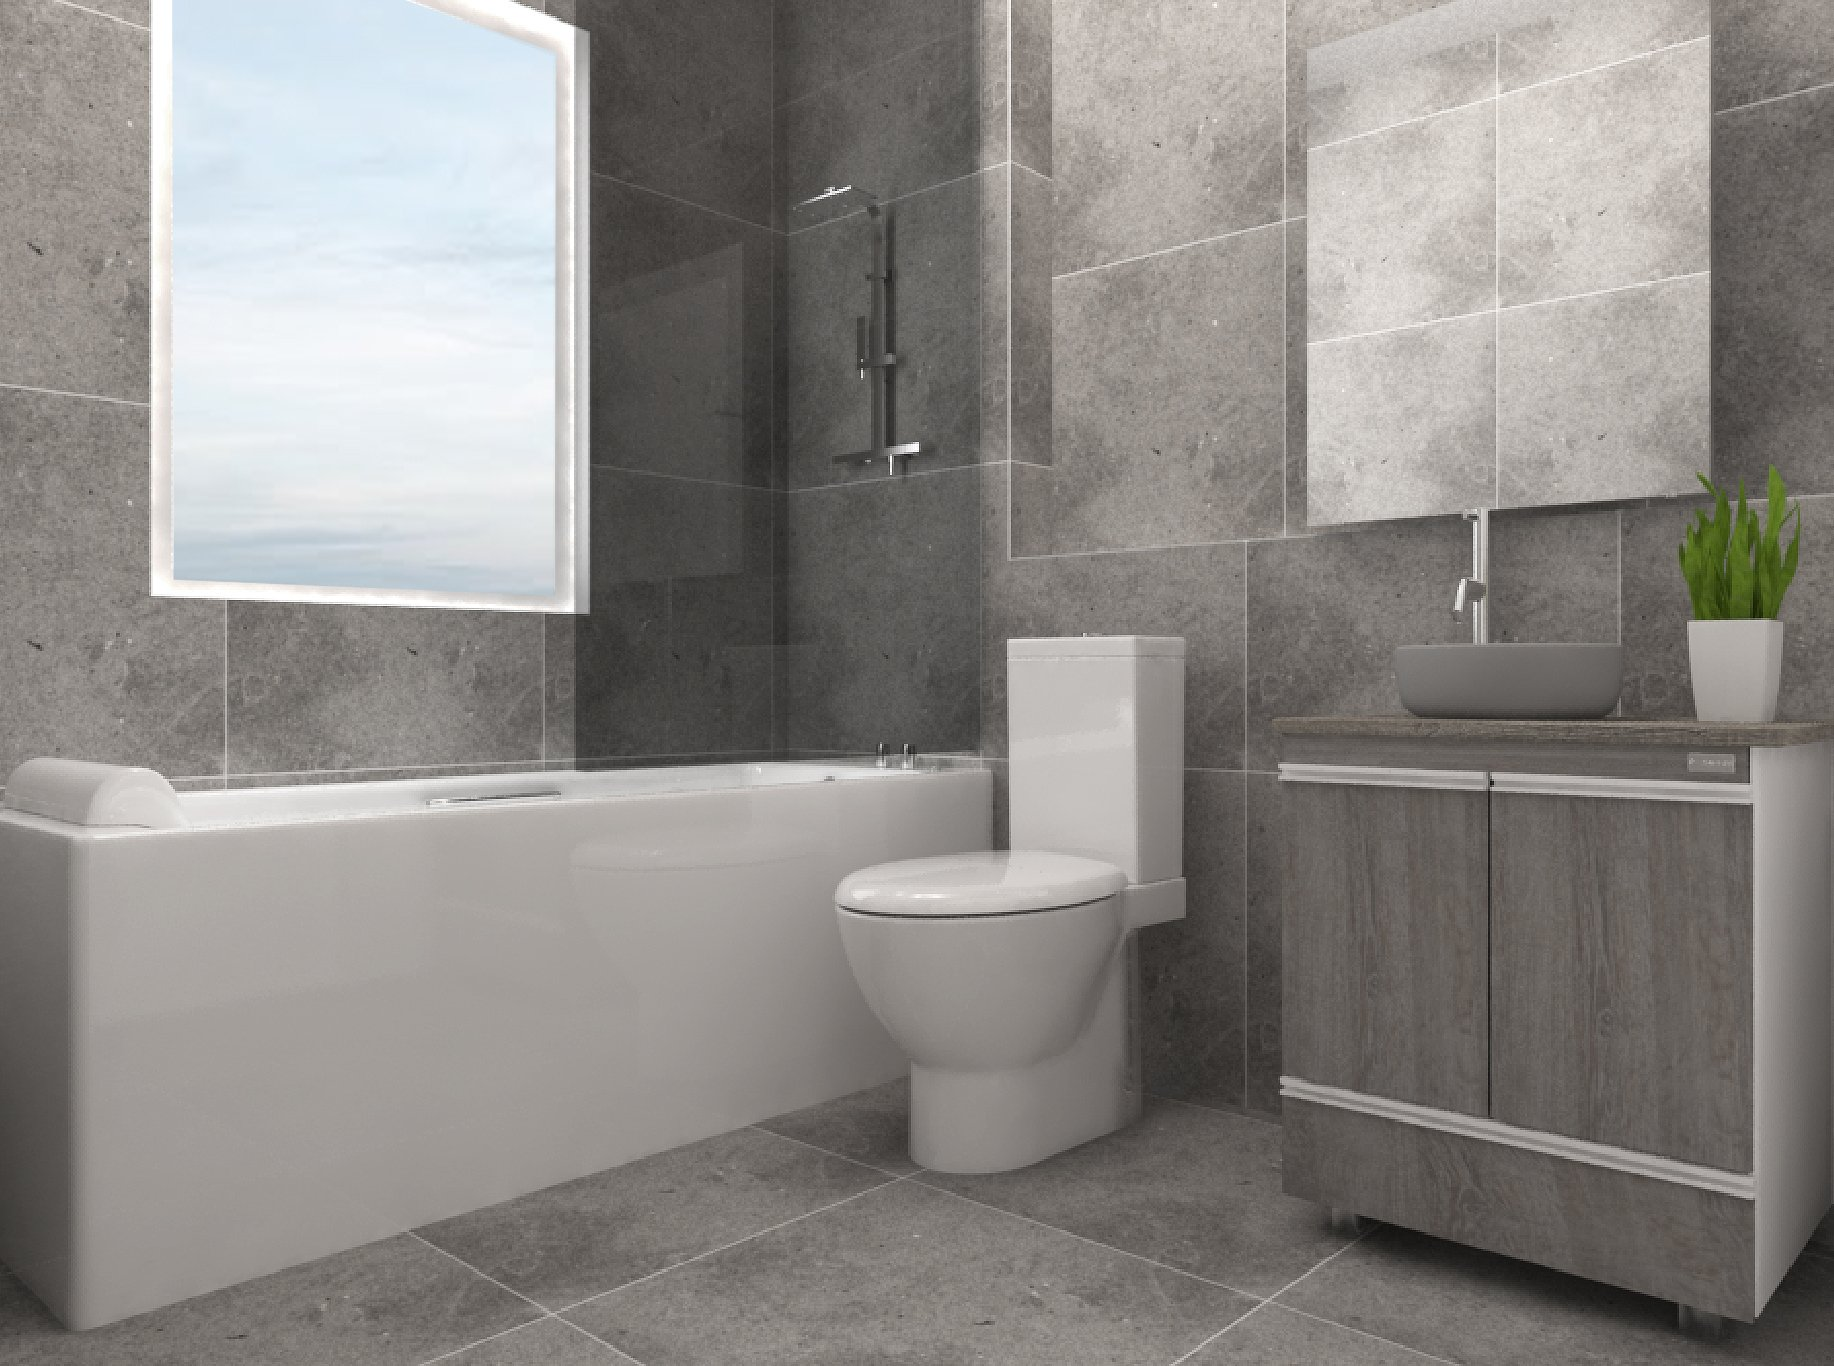 3d design service see your future bathroom before you buy for 3d bathroom design